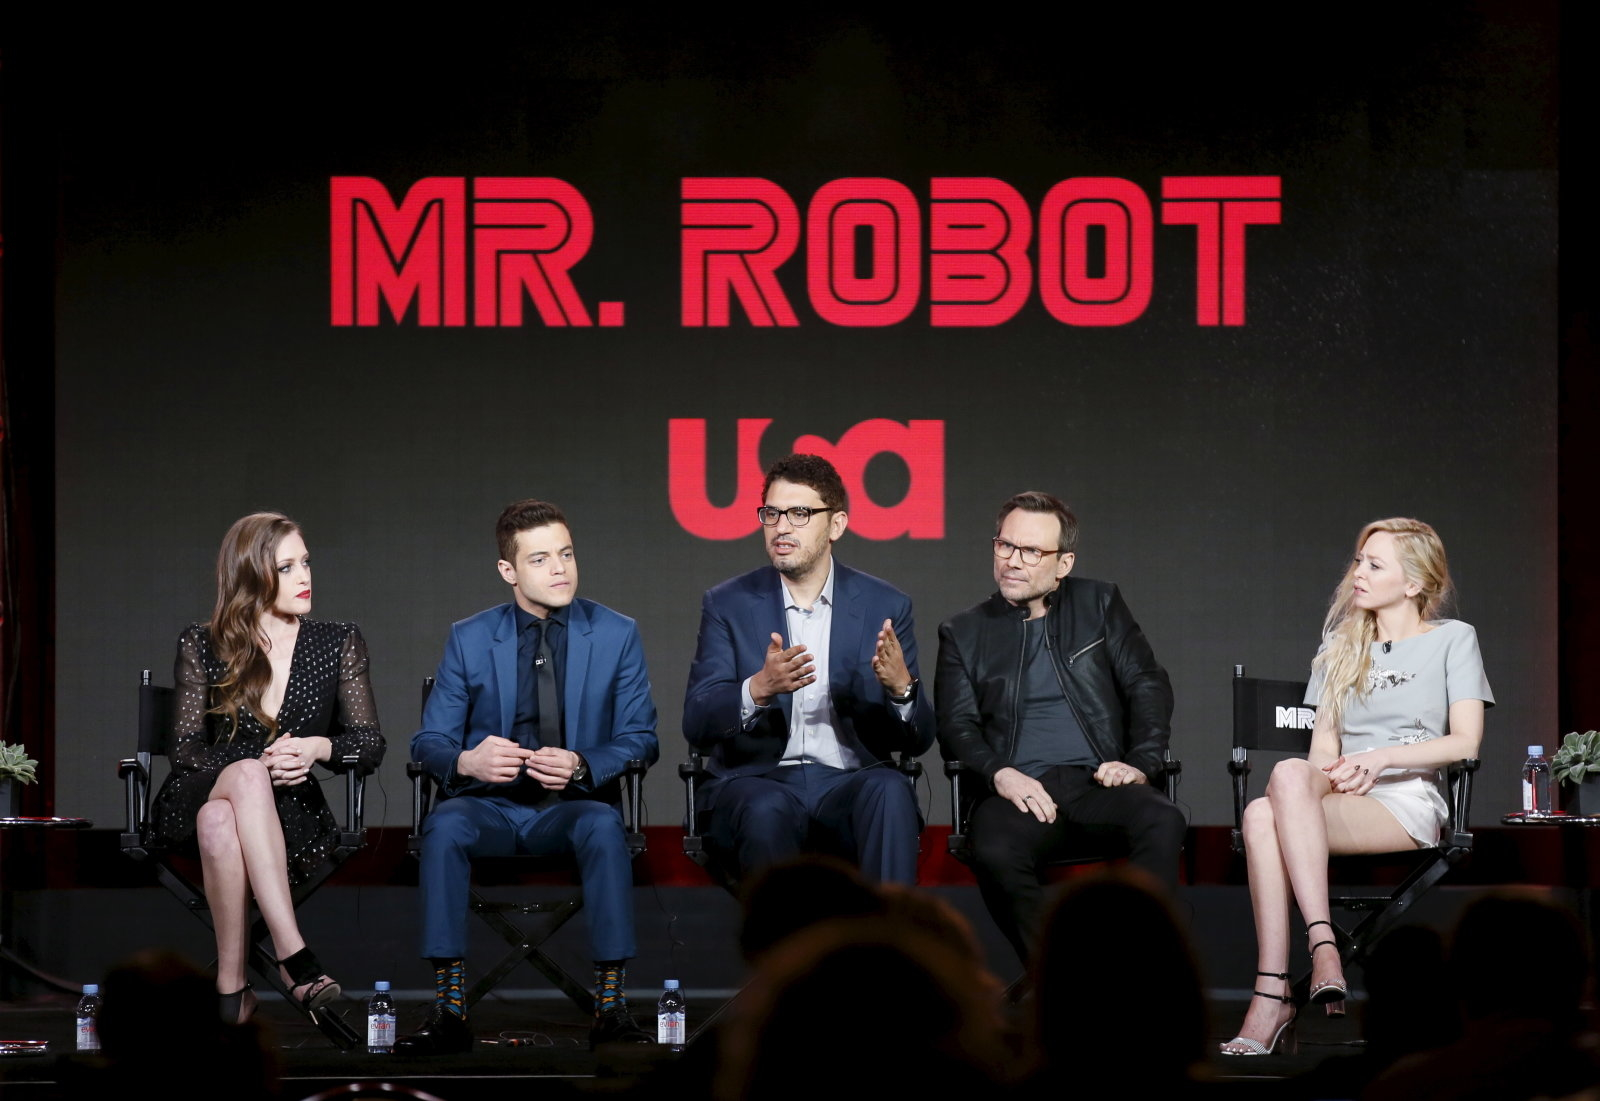 """Creator and executive producer Sam Esmail (C) speaks on stage with cast members Carly Chaikin, Rami Malek, Christian Slater and Portia Doubleday (L-R) during a panel for the USA Network series """"Mr. Robot"""" during the Television Critics Association (TCA) Cable Winter Press Tour in Pasadena, California, January 14, 2016. REUTERS/Danny Moloshok"""